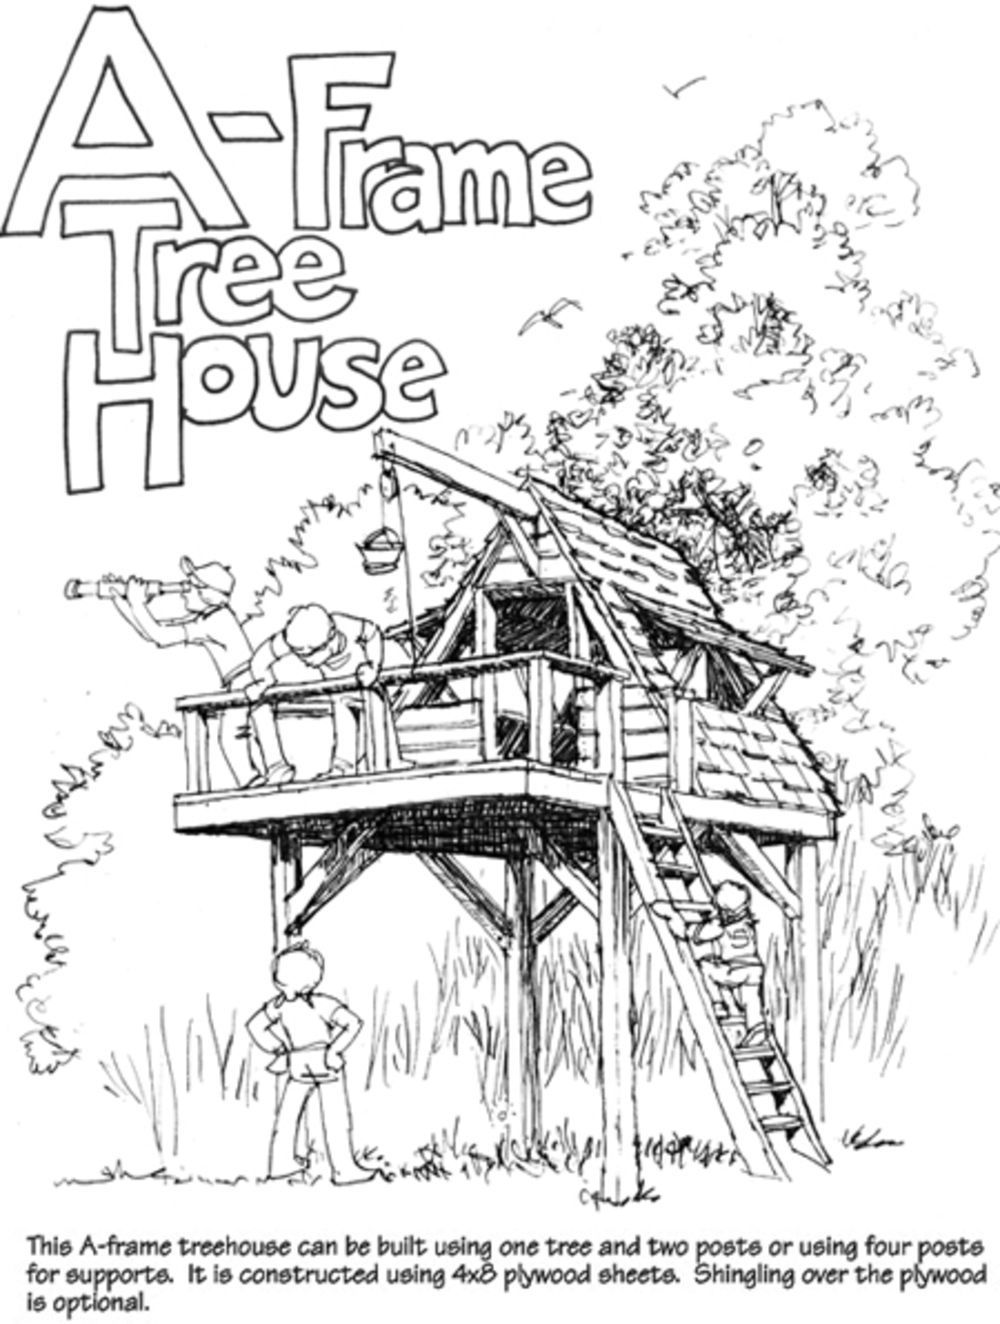 Design Tree House Plans 9 completely free tree house plans